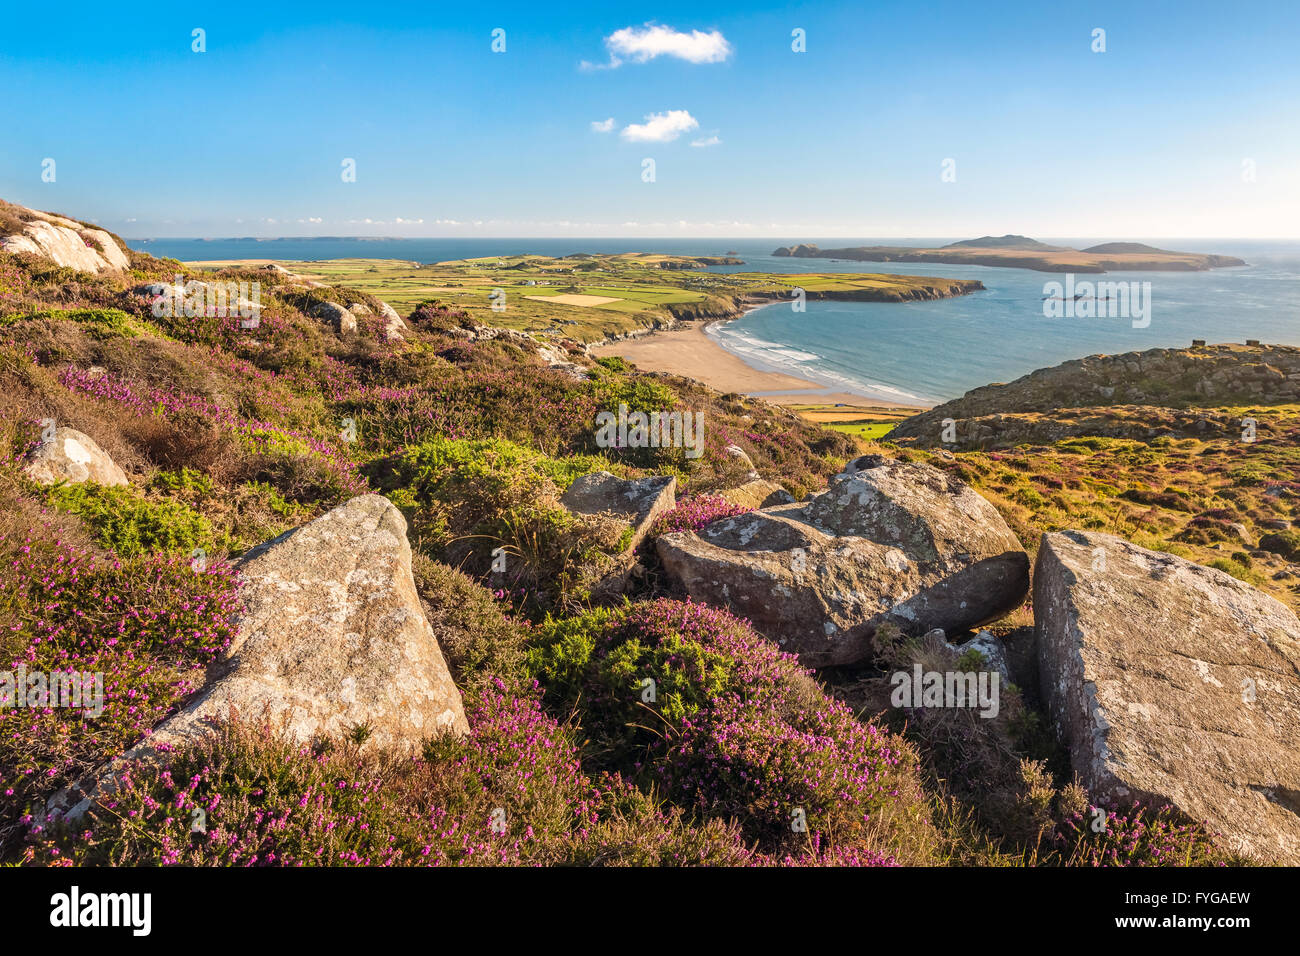 Coastal view down to Whitesands Bay and Ramsey Island taken from Carn Llidi summit on the north Pembrokeshire coastline - Stock Image